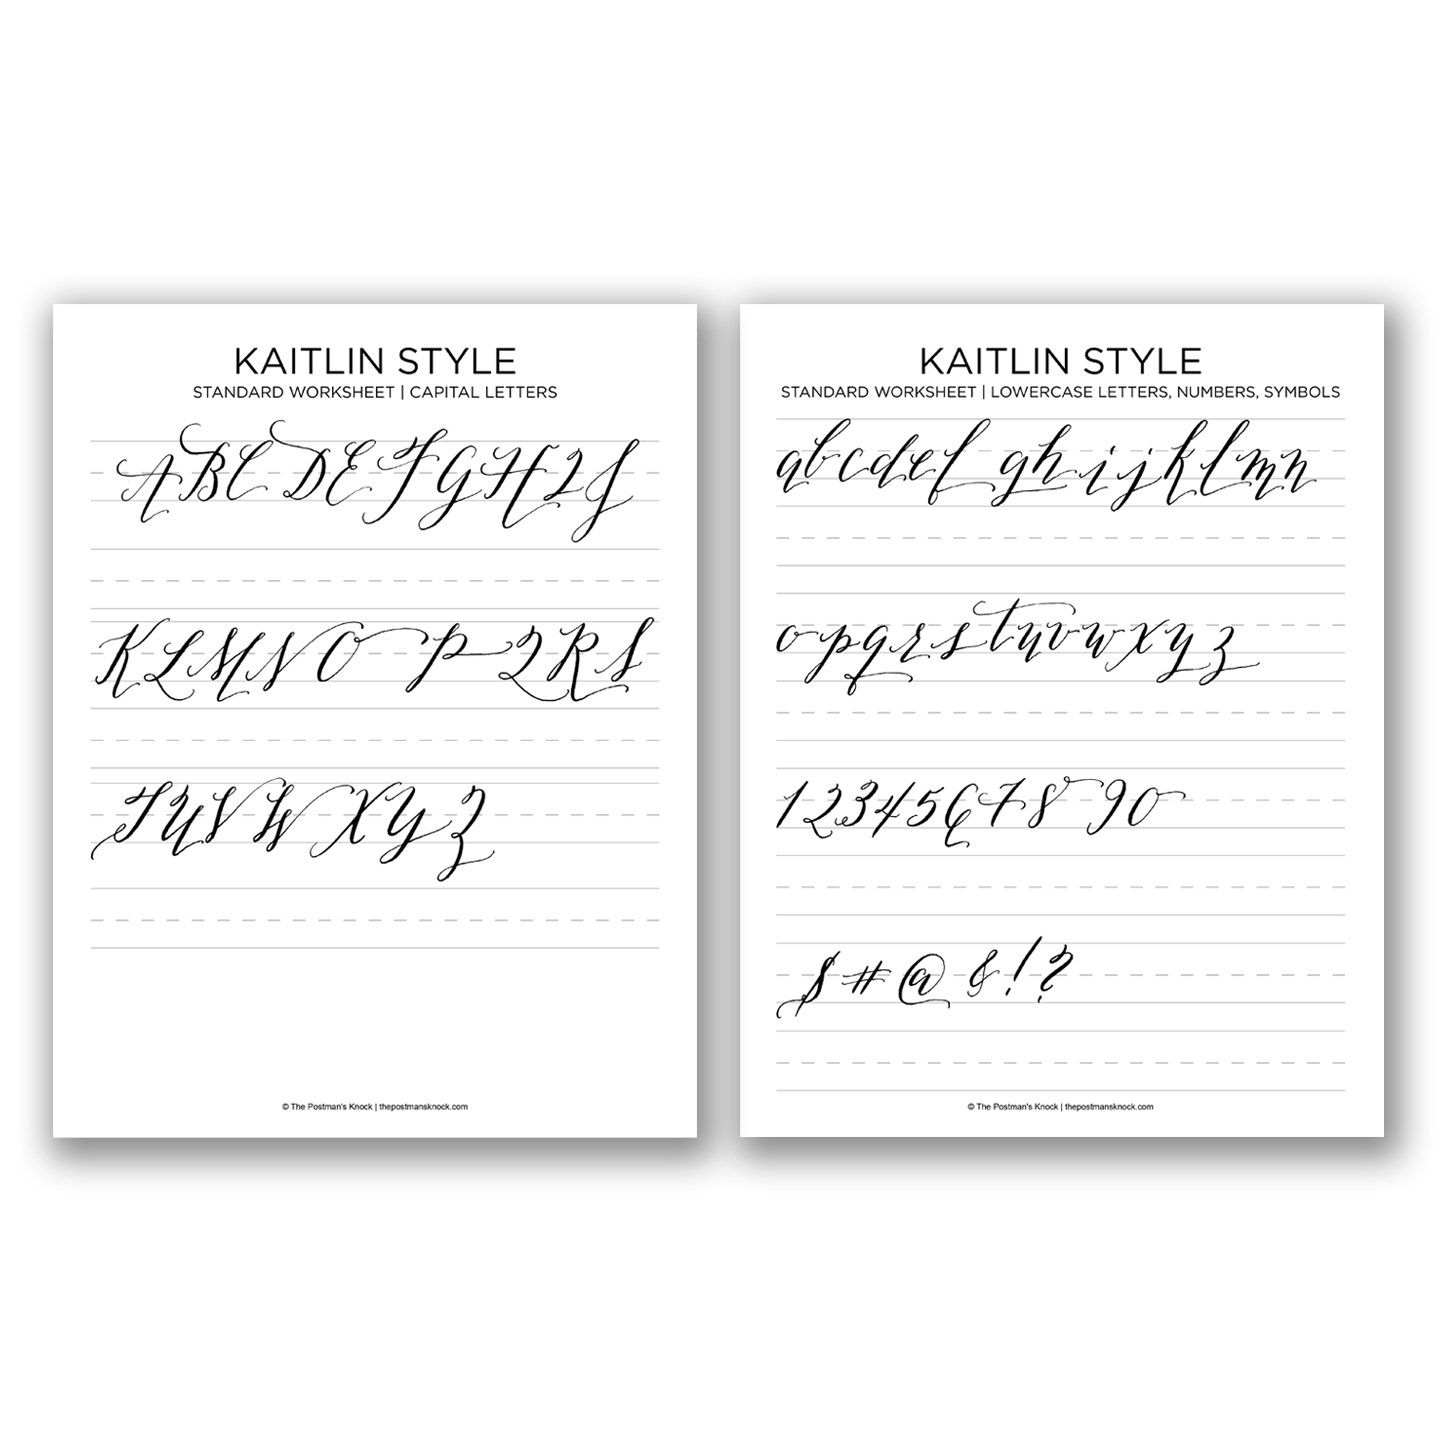 Kaitlin Style Standard Worksheet Print Page Print 3rd